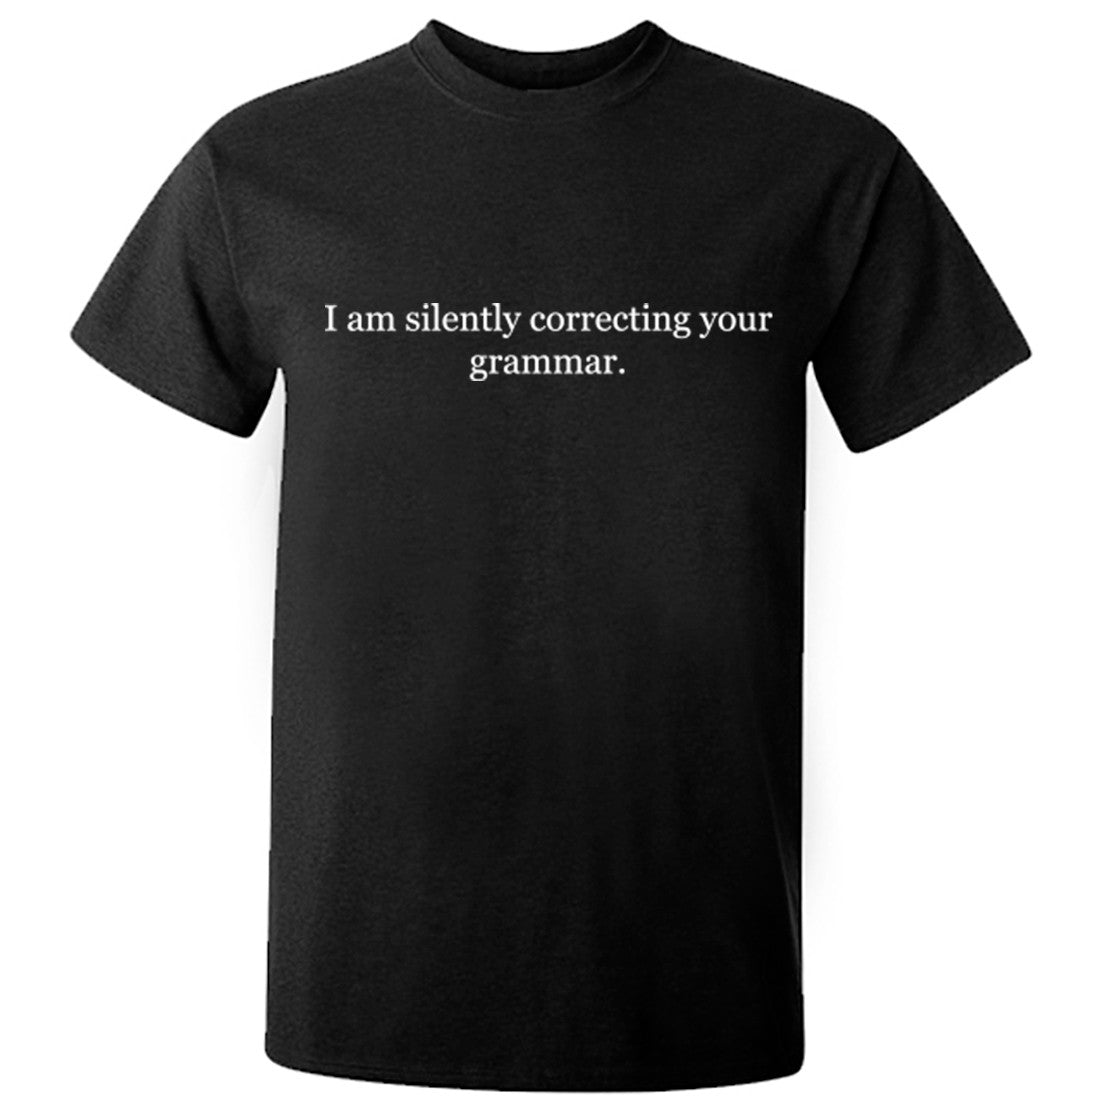 I am silently correcting your grammar unisex t-shirt K0189